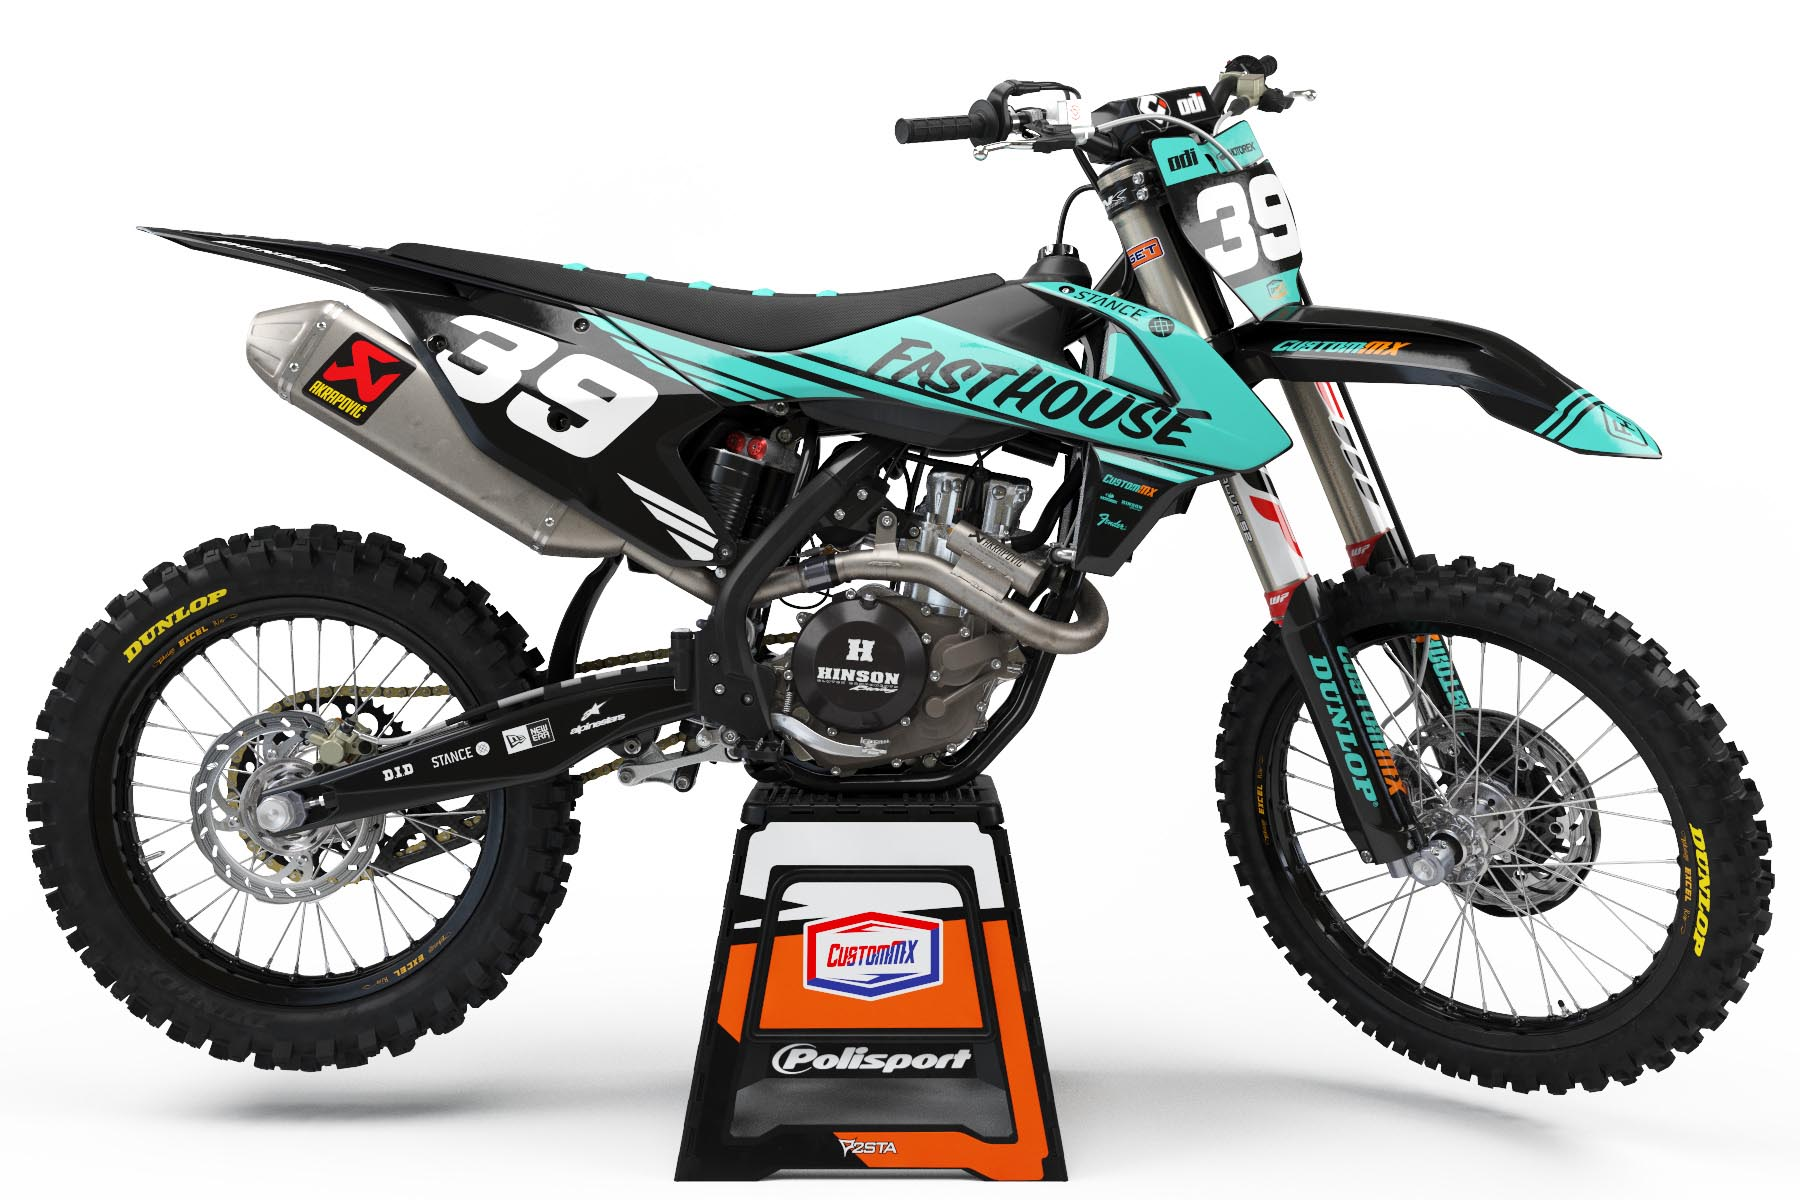 2019 Ktm Sxf >> Split Series (Teal/Black) – KTM SX/SXF/EXC/EXC-F Graphics Kit – Custom MX – The Home Of Semi ...